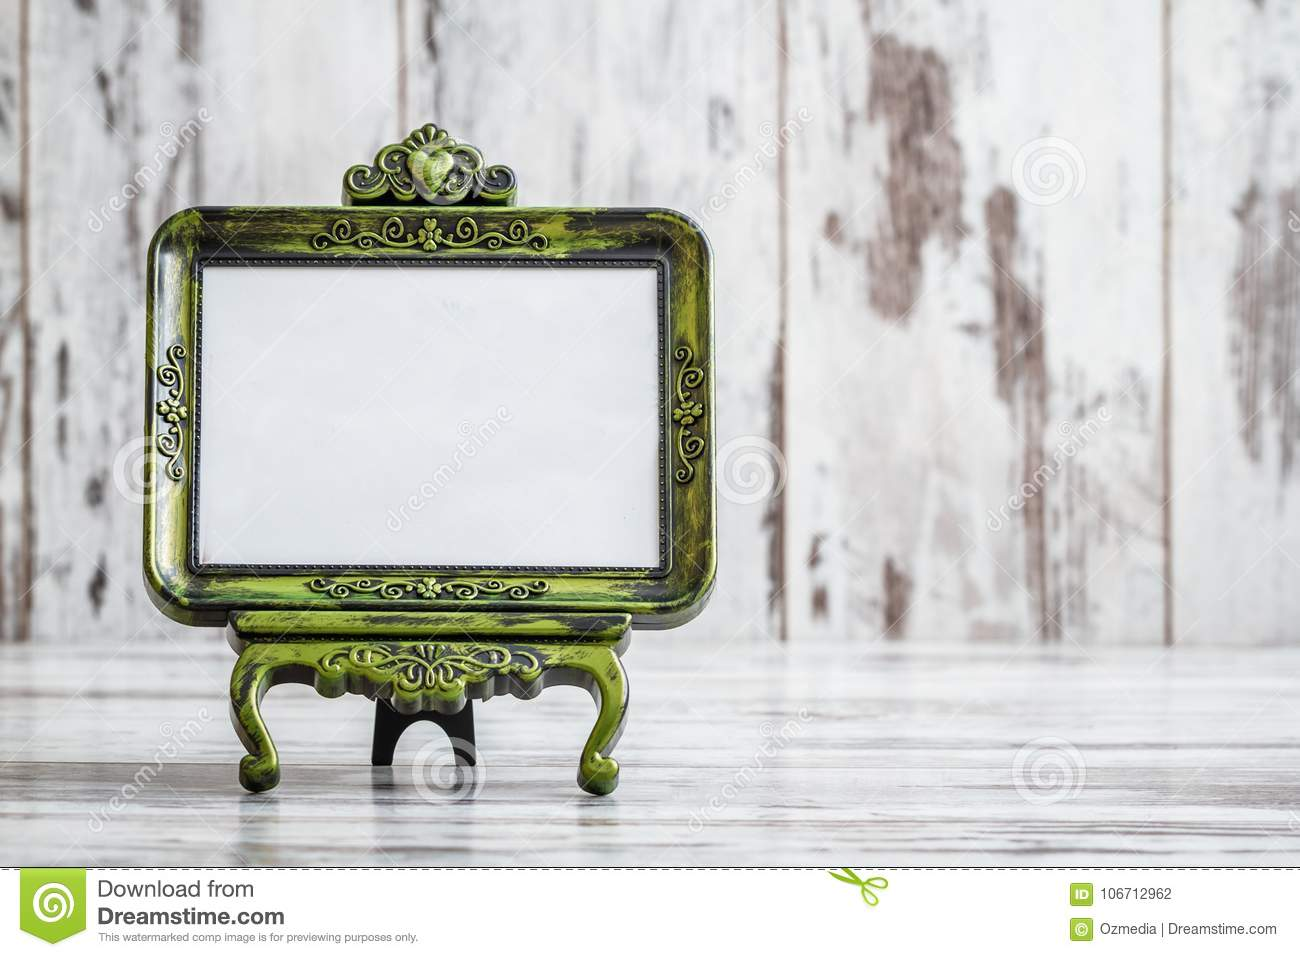 Decorative Vintage Tabletop Freestanding Picture Frames Stock Photo ...